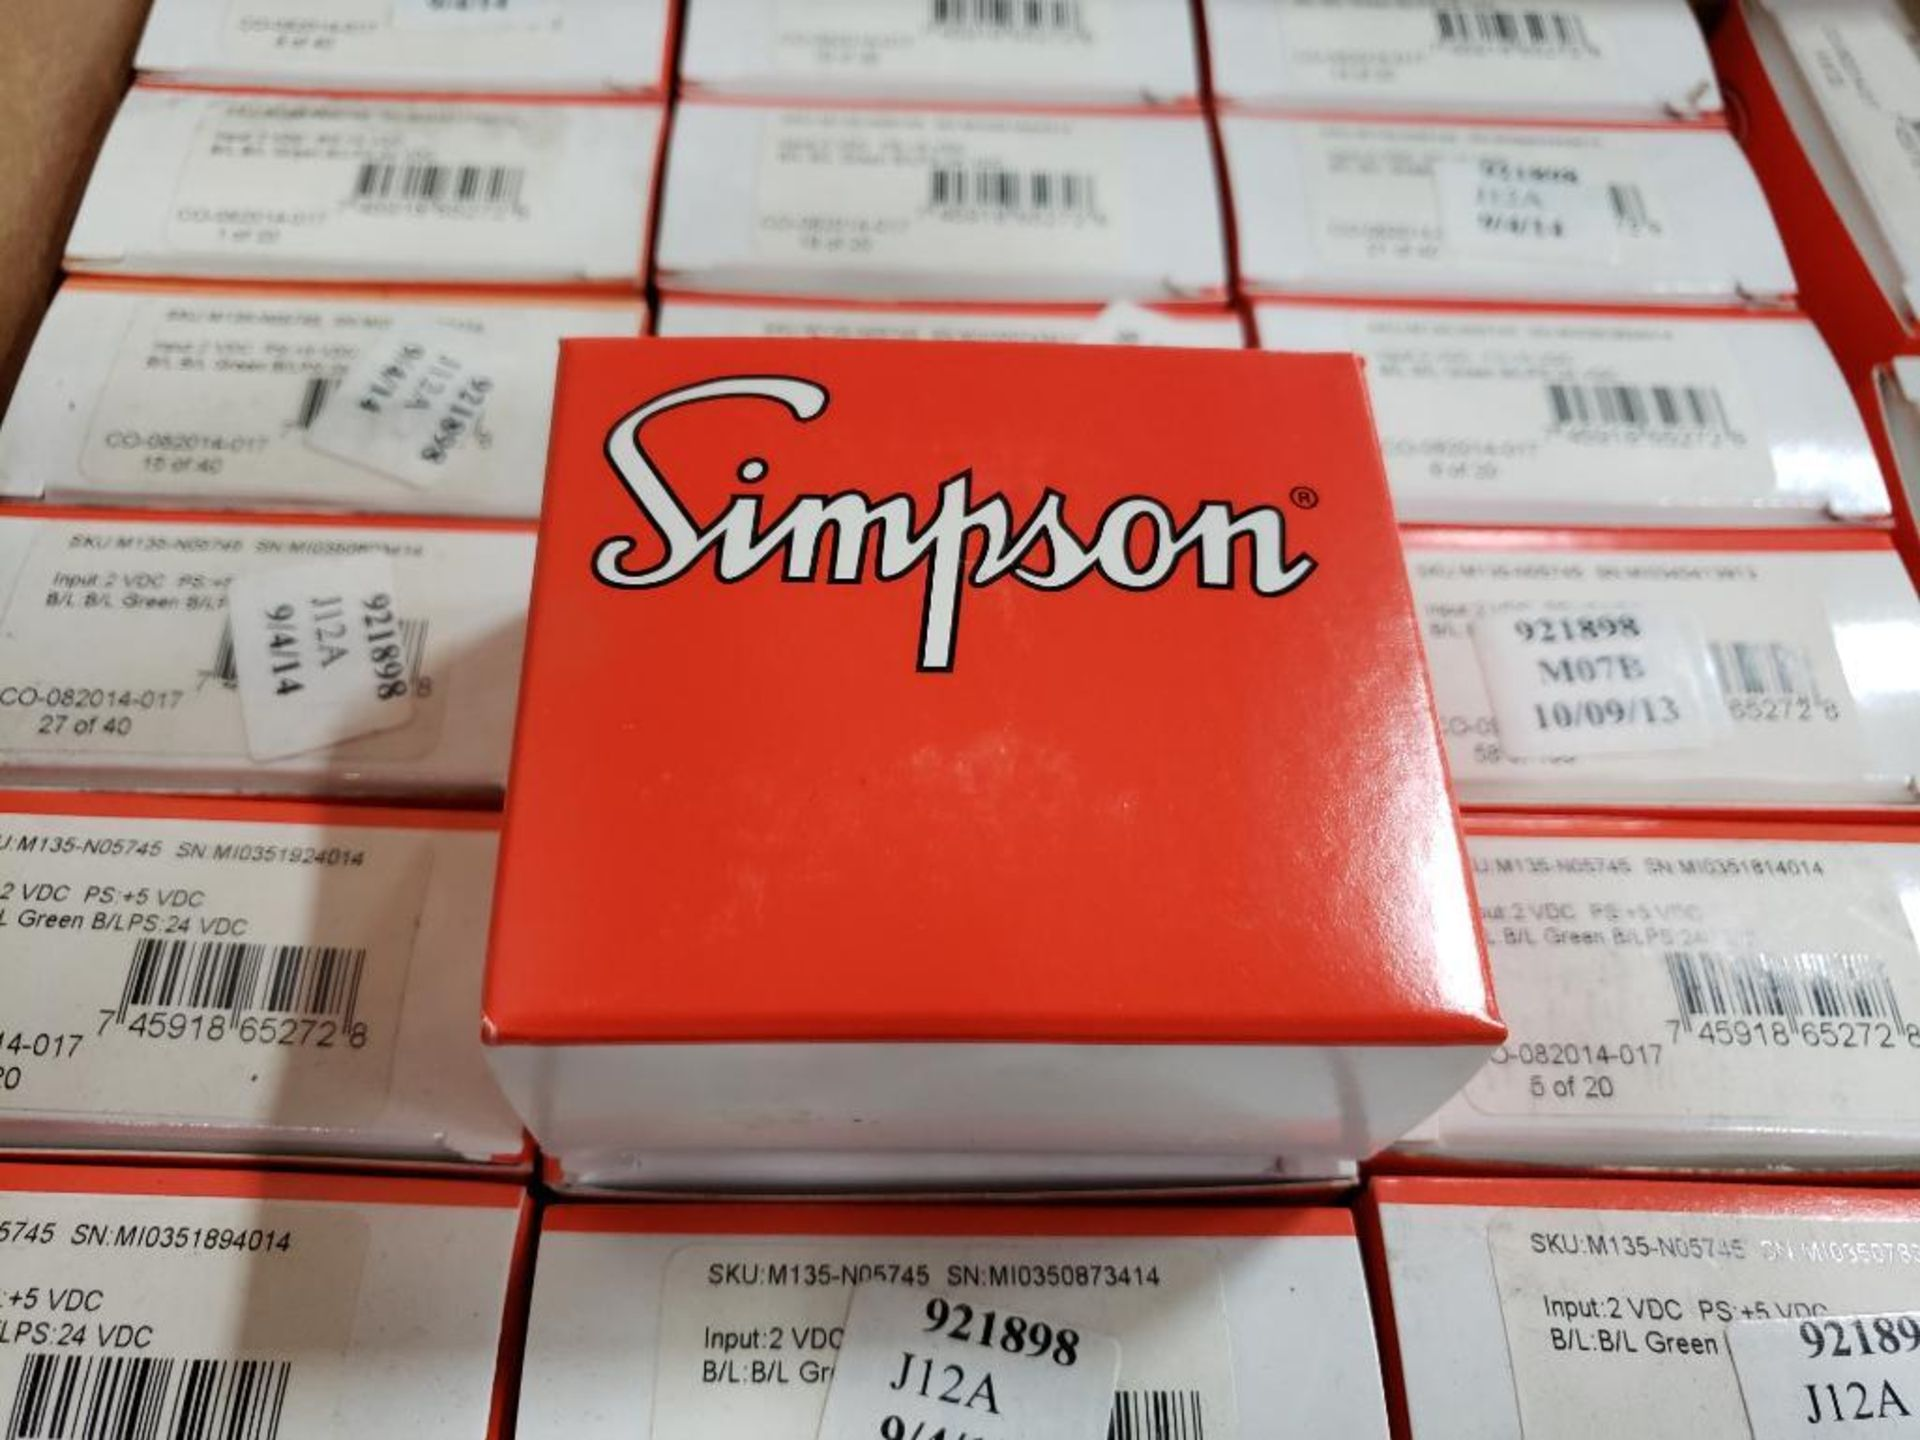 Qty 24 - Simpson gauge model CO-082014-014. New in box. - Image 2 of 3